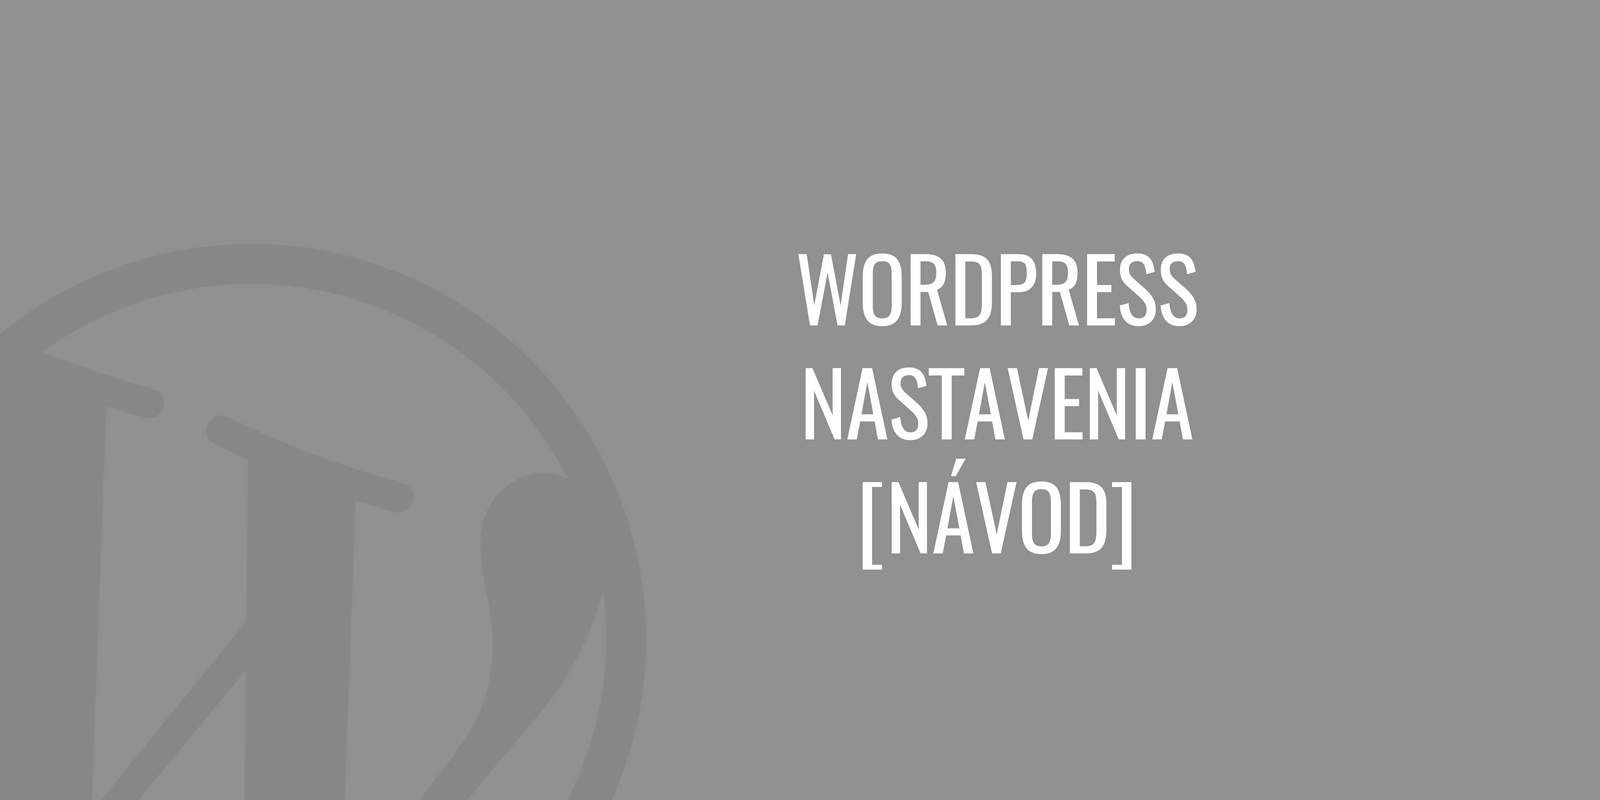 WordPress nastavenia